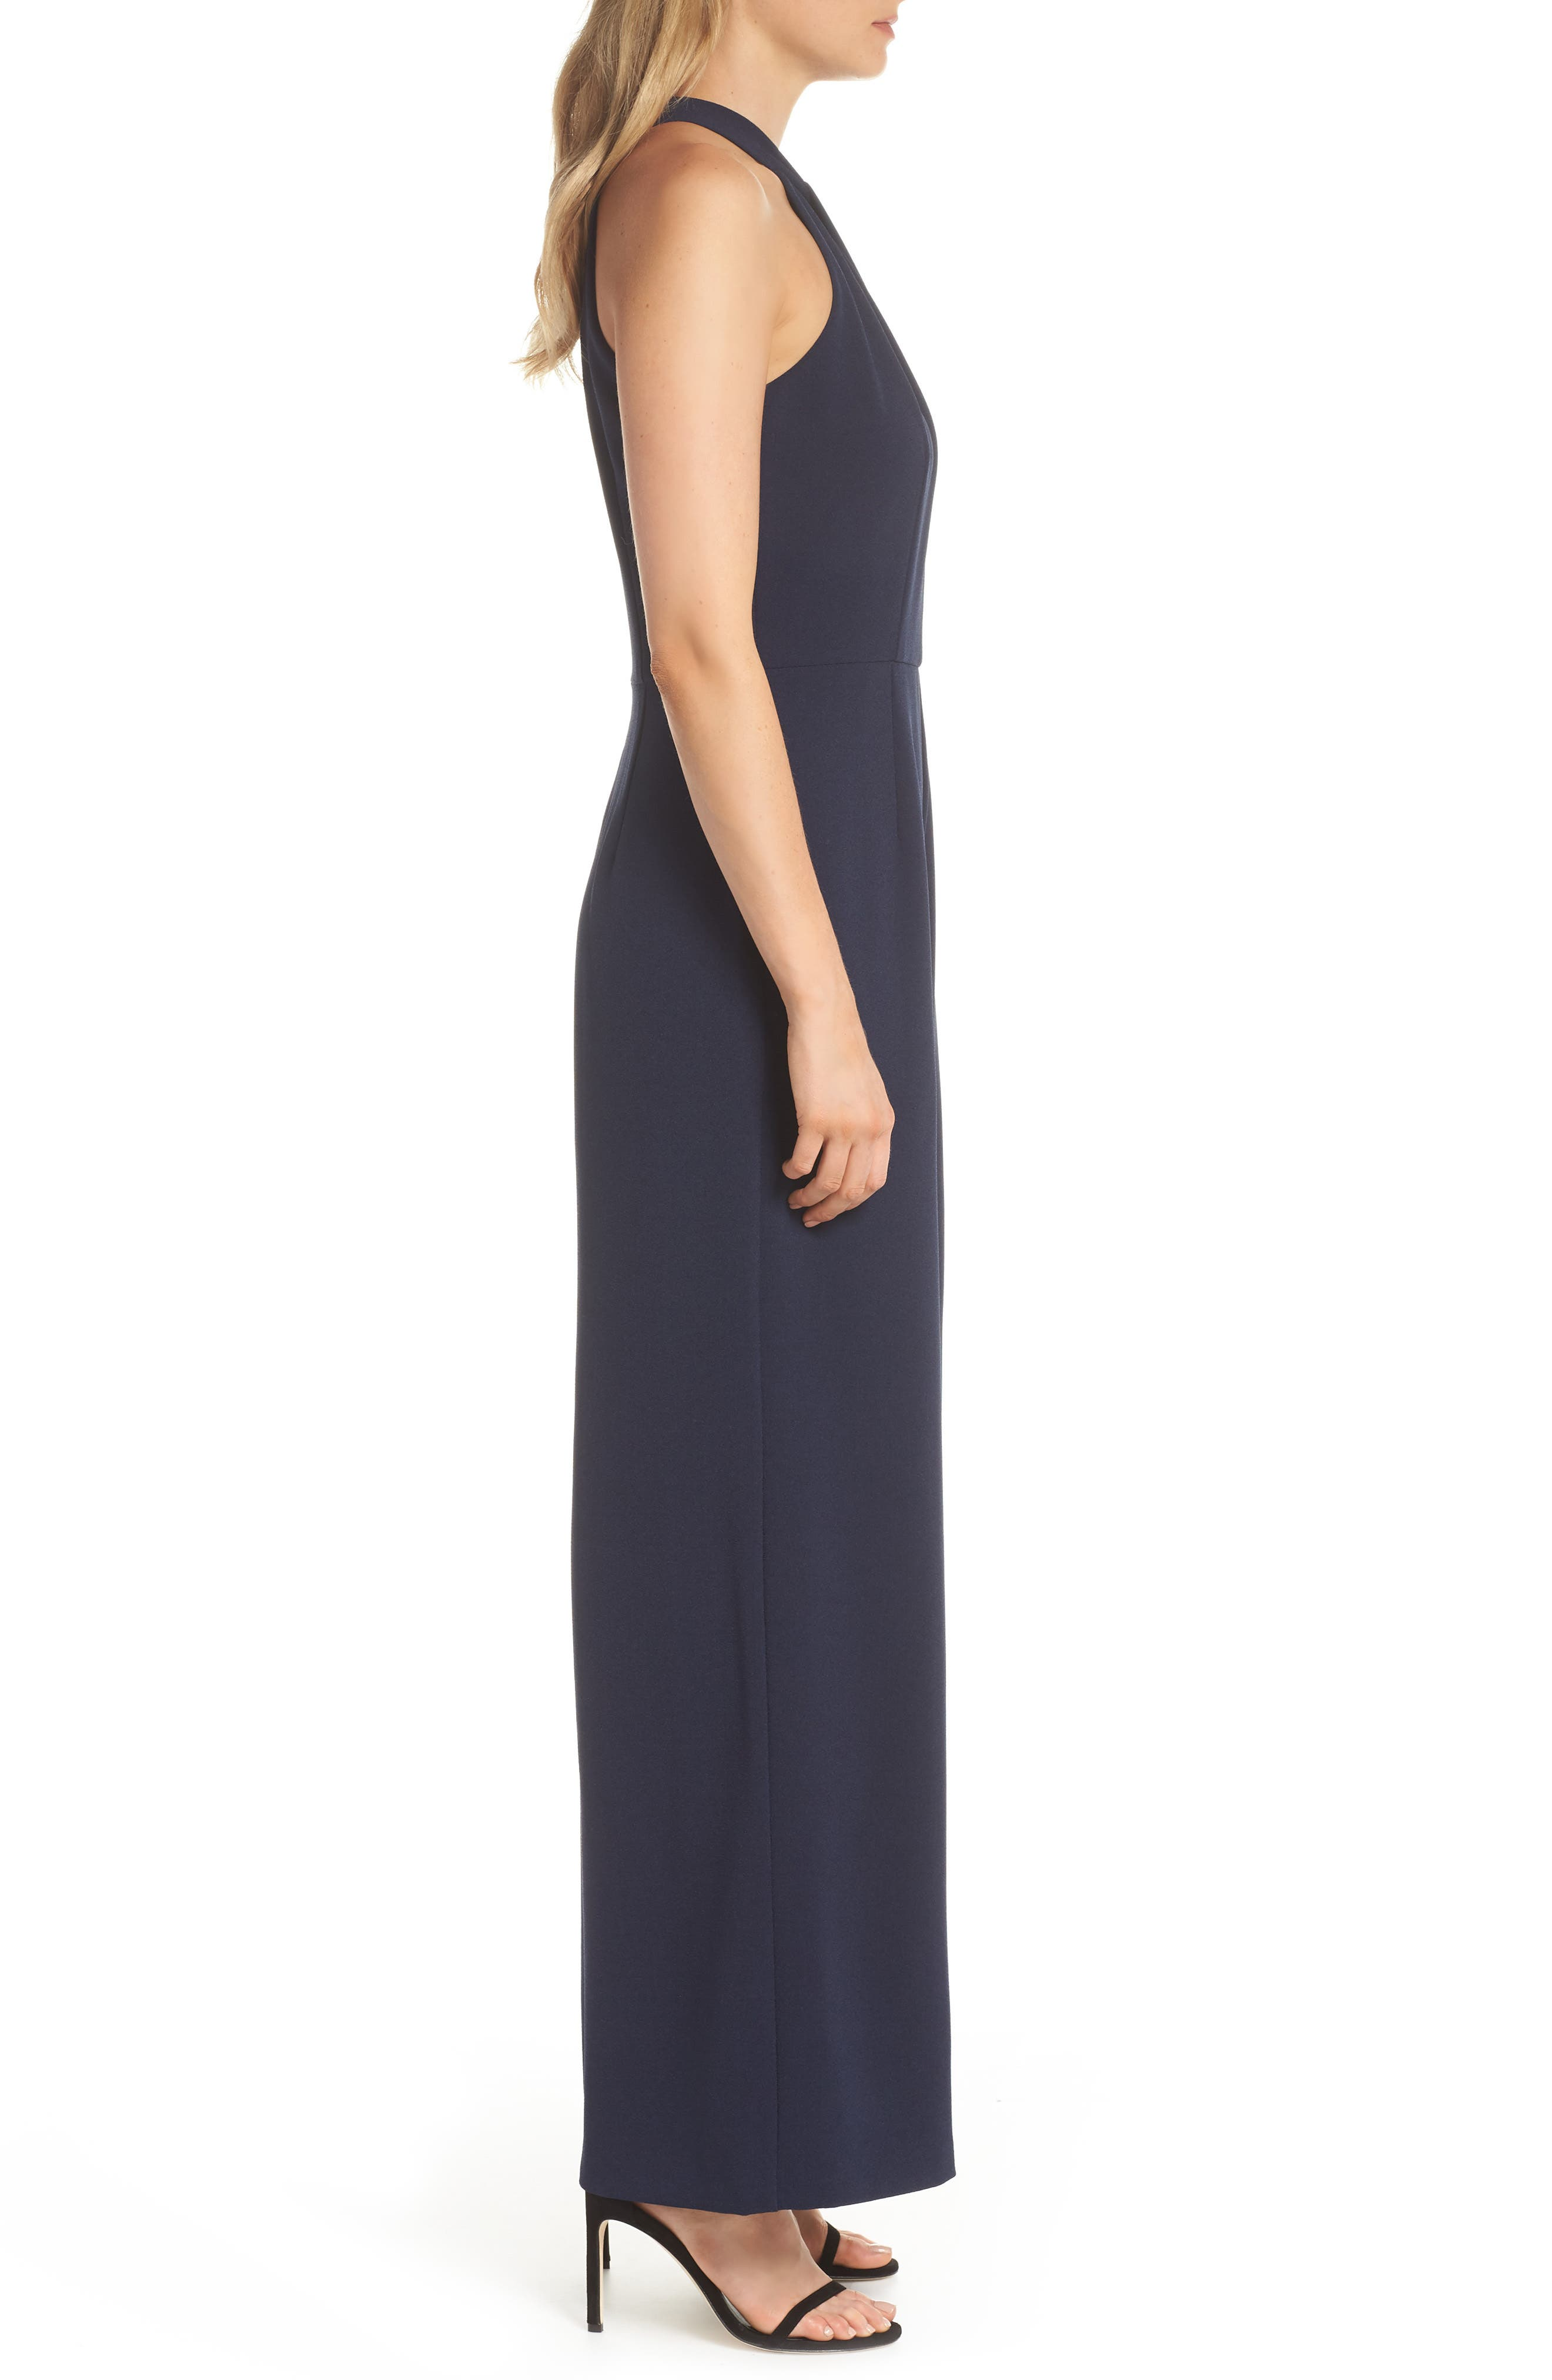 JULIA JORDAN, Halter Wide Leg Jumpsuit, Alternate thumbnail 4, color, NAVY